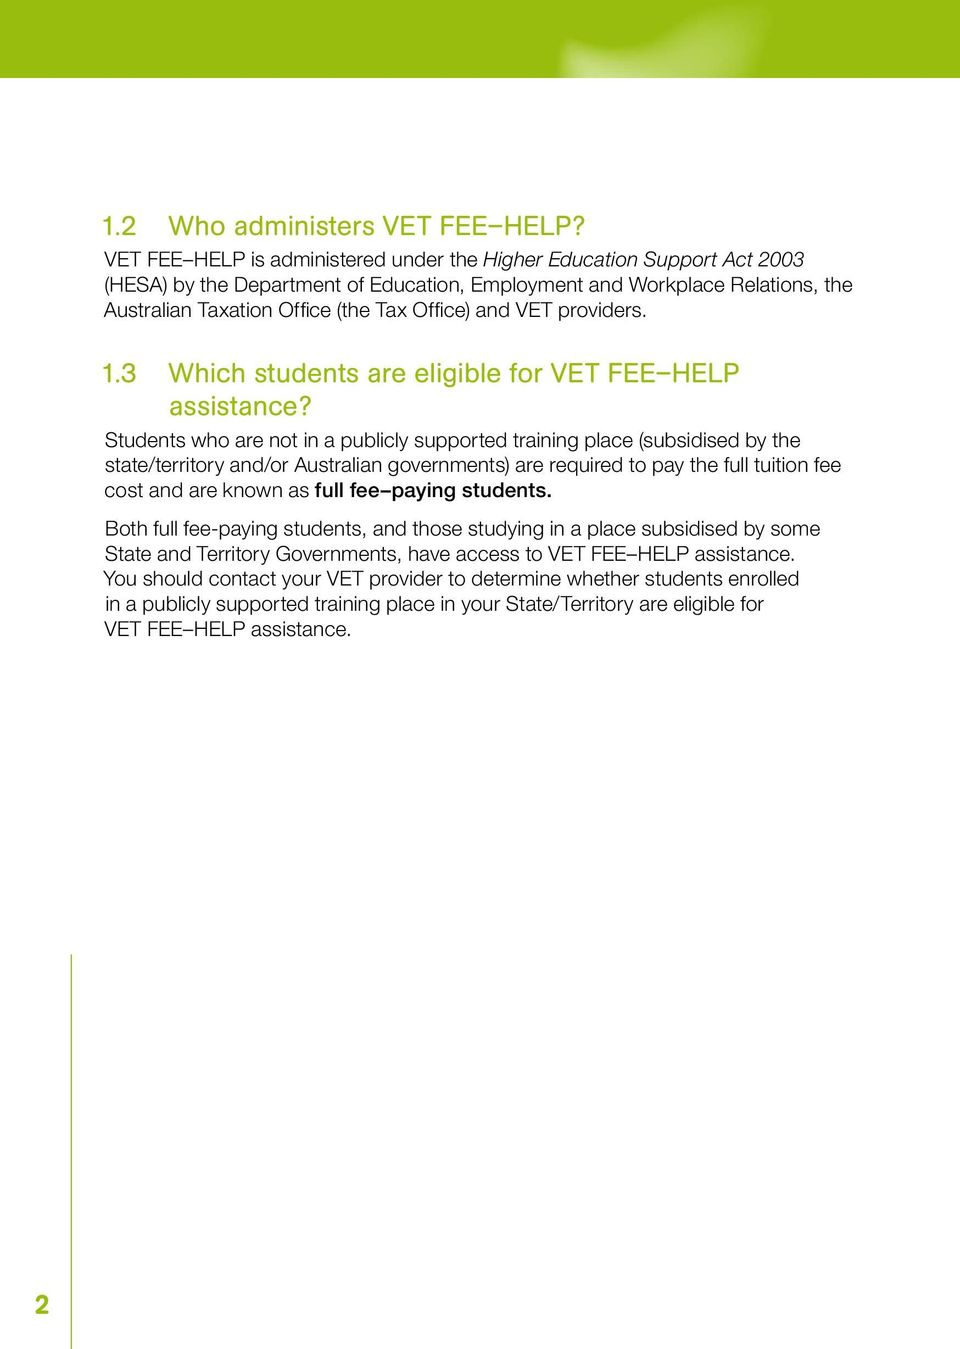 and VET providers. 1.3 Which students are eligible for VET FEE HELP assistance?